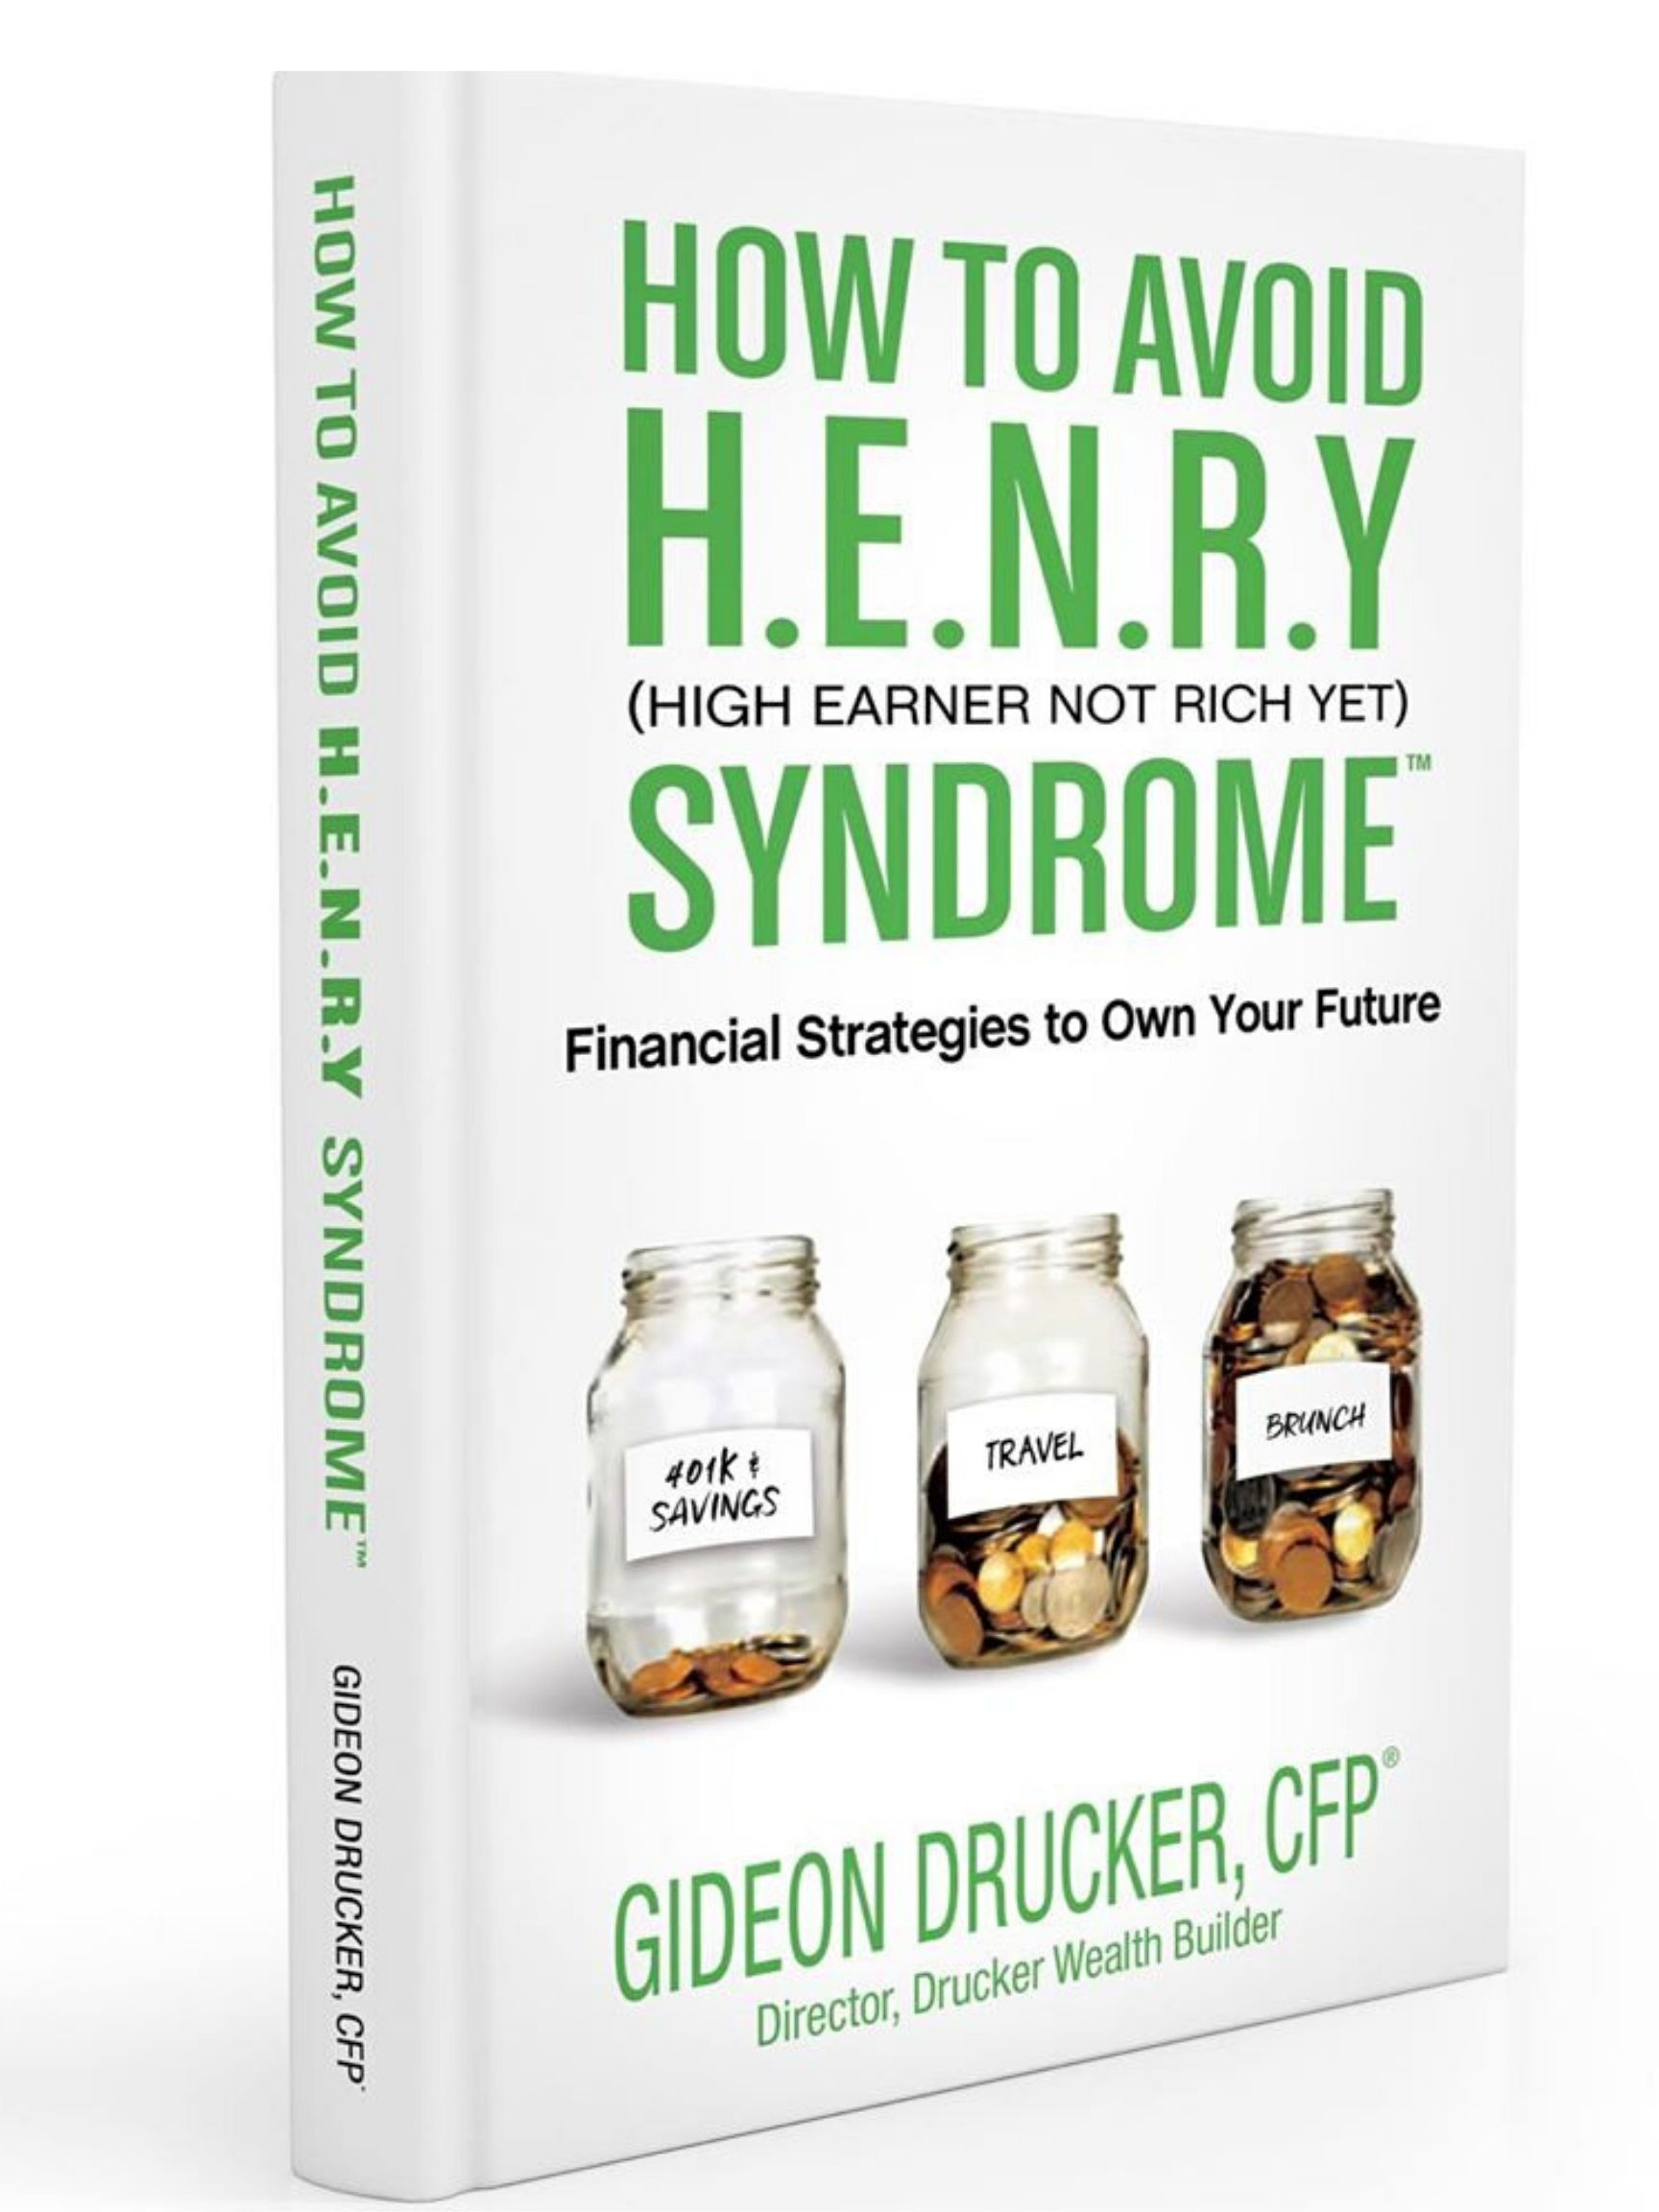 """Book Cover """"How To Avoid High Earner, not rich yet Syndrome"""" by Gideon Drucker, CFP"""